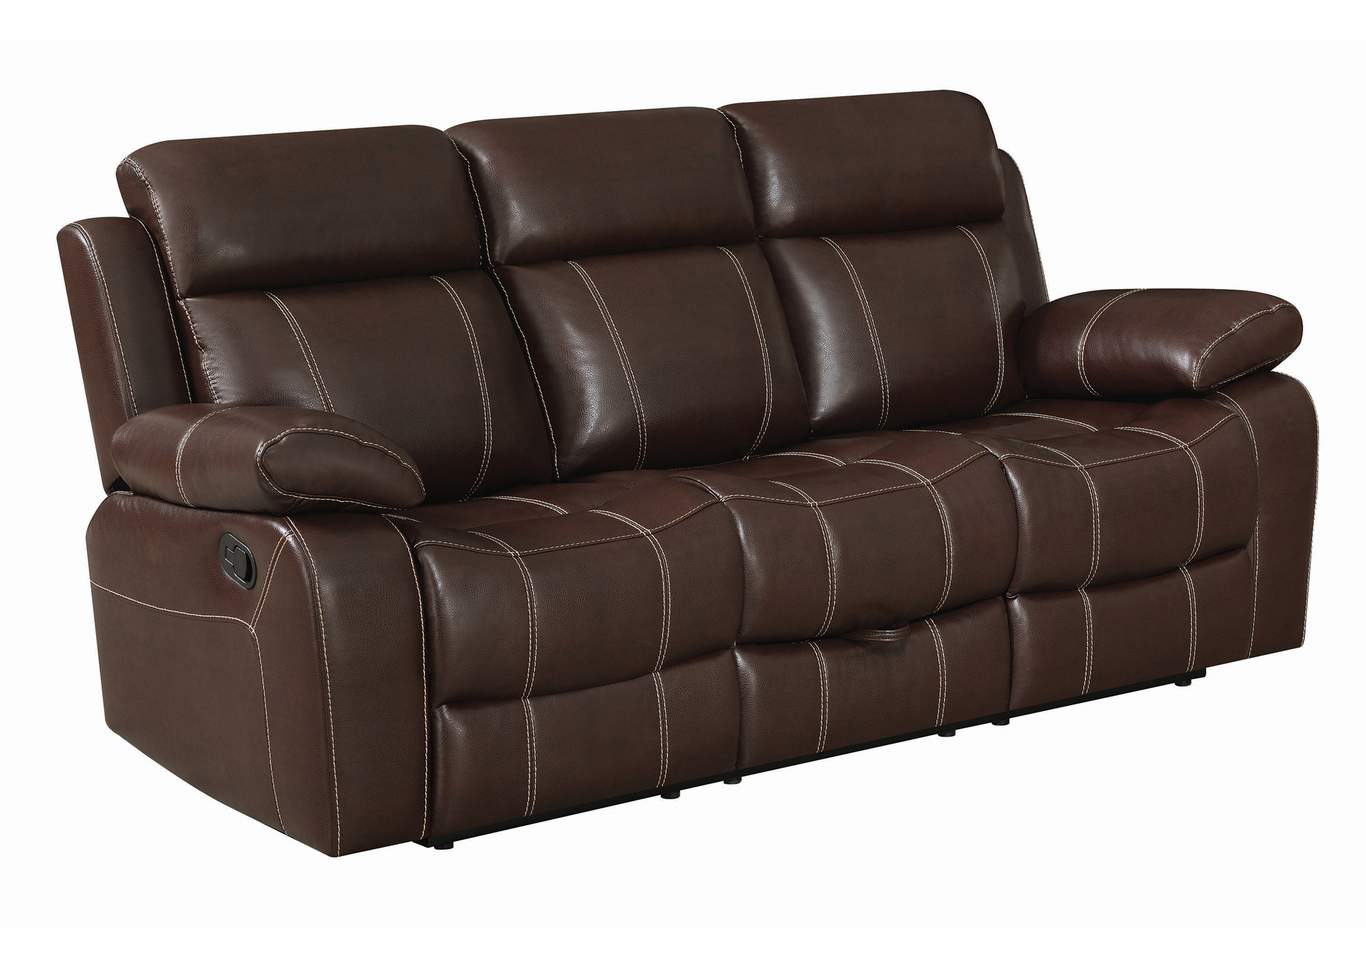 Mondo Myleene Leather Reclining Sofa,Coaster Furniture